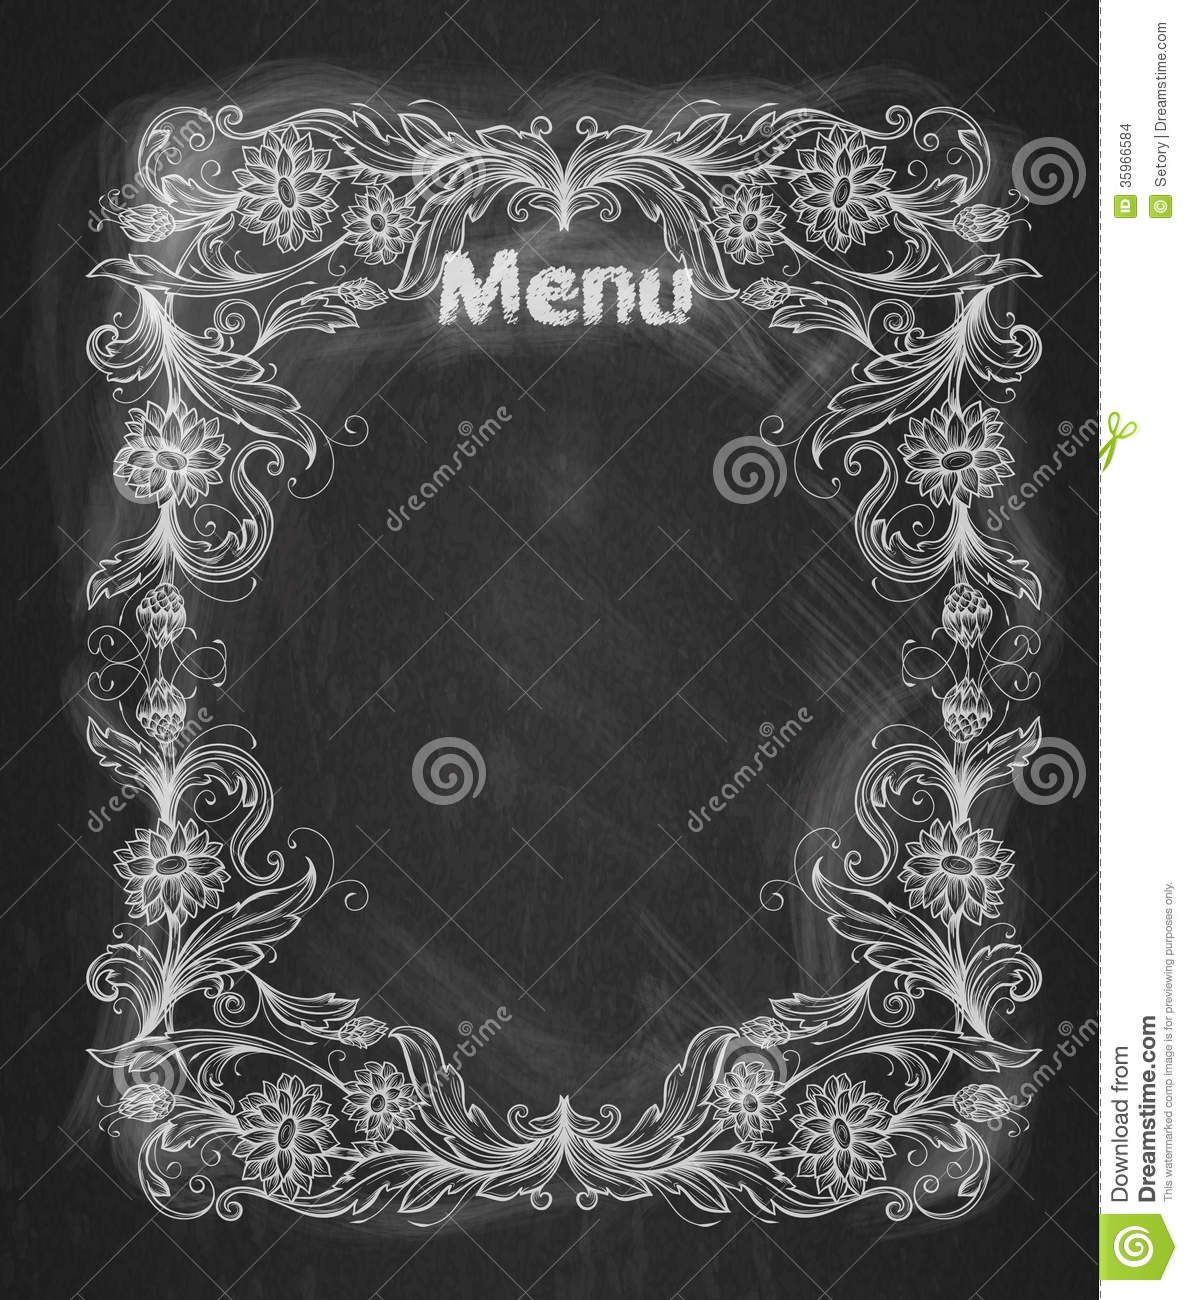 vintage frame on the chalkboard stock images - Decorative Chalkboards